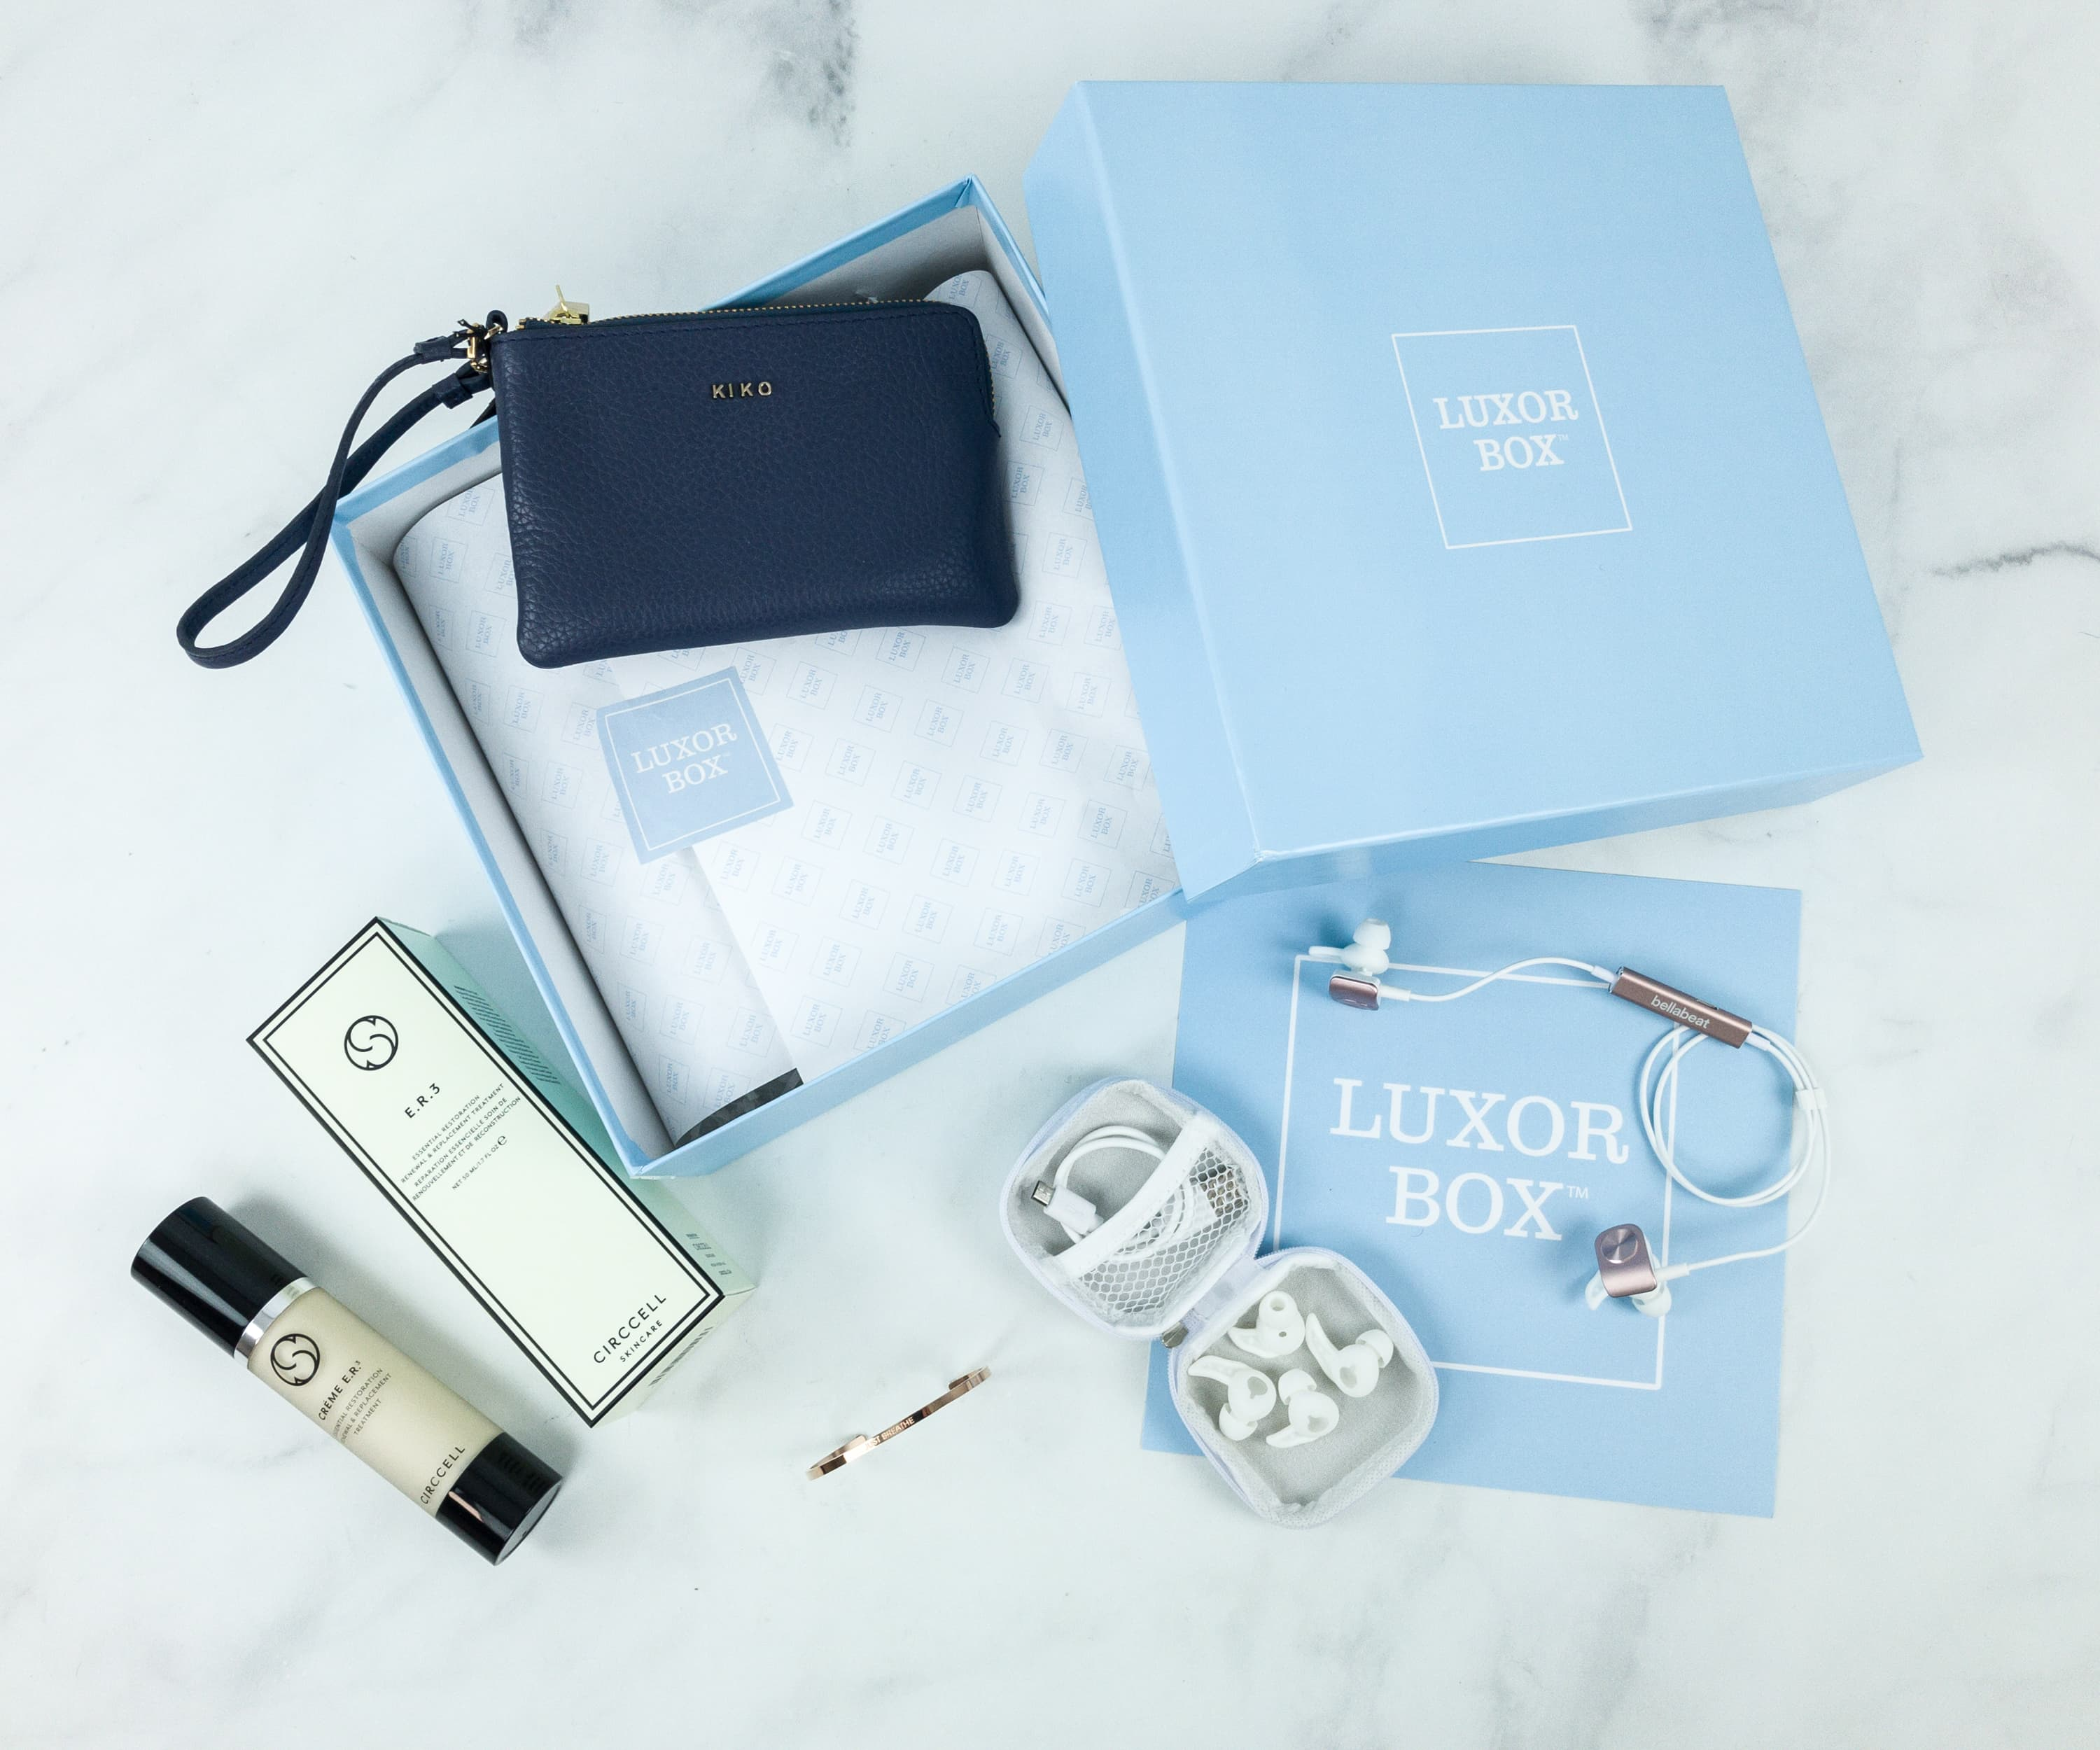 Luxor Box January 2019 Subscription Box Review